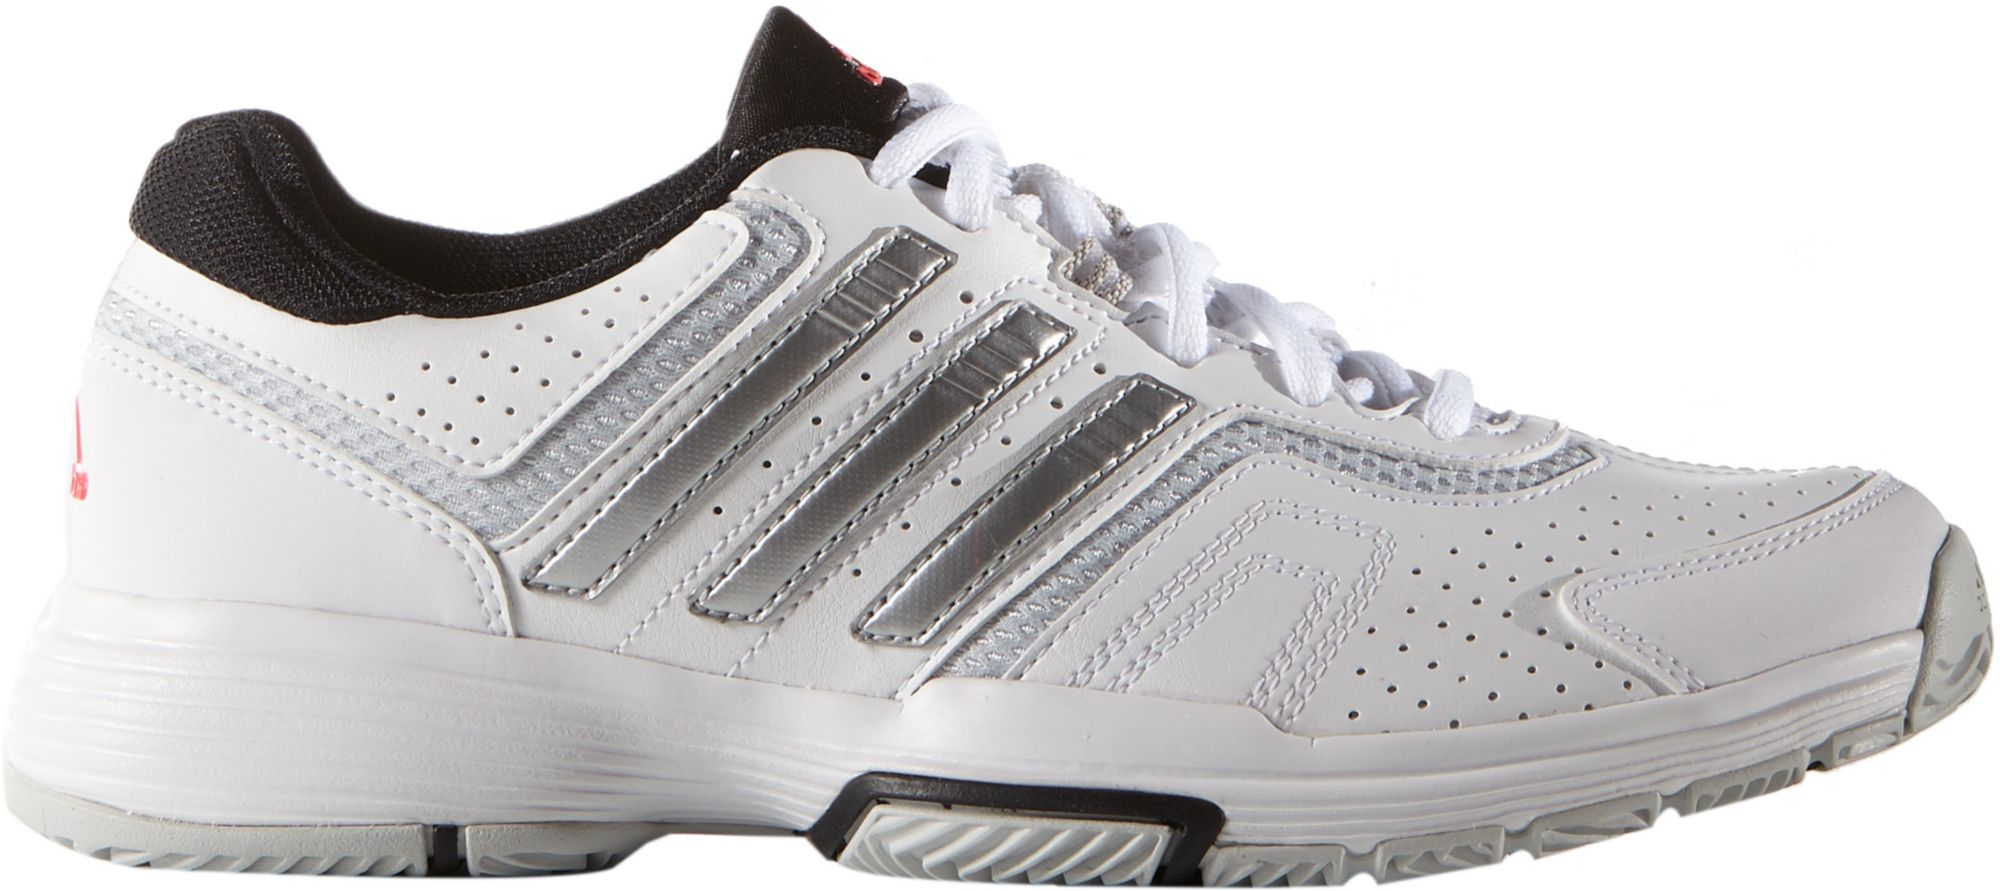 official photos 861ad 00065 ... shop adidas womens barricade court 2 tennis shoes dicks sporting goods  3aa8f 5beca